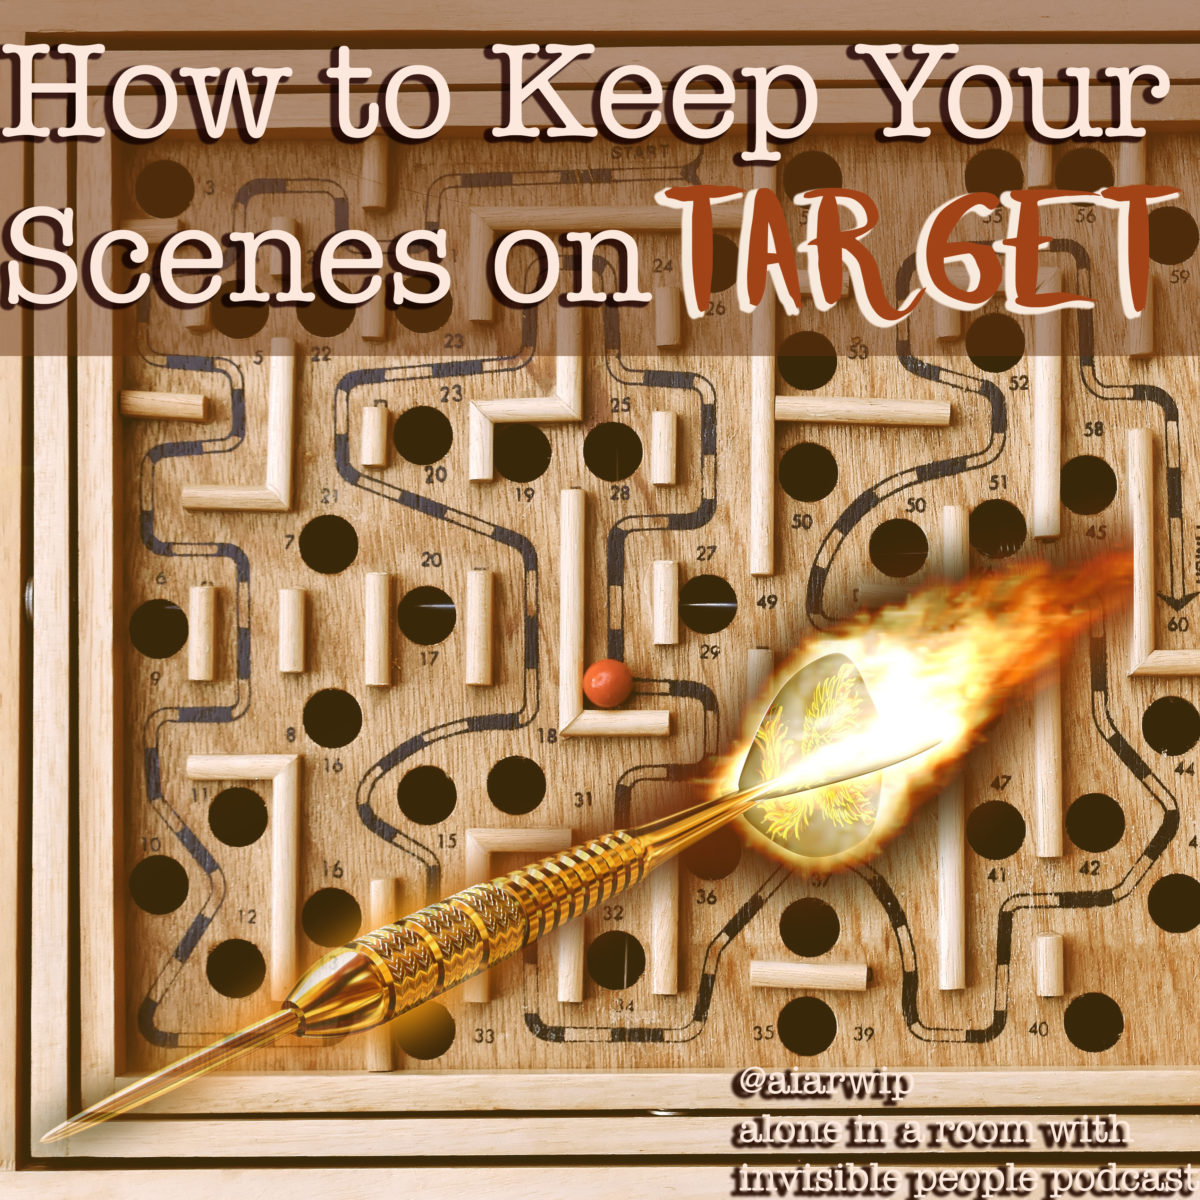 Episode 64: How to Keep Your Scenes On Target